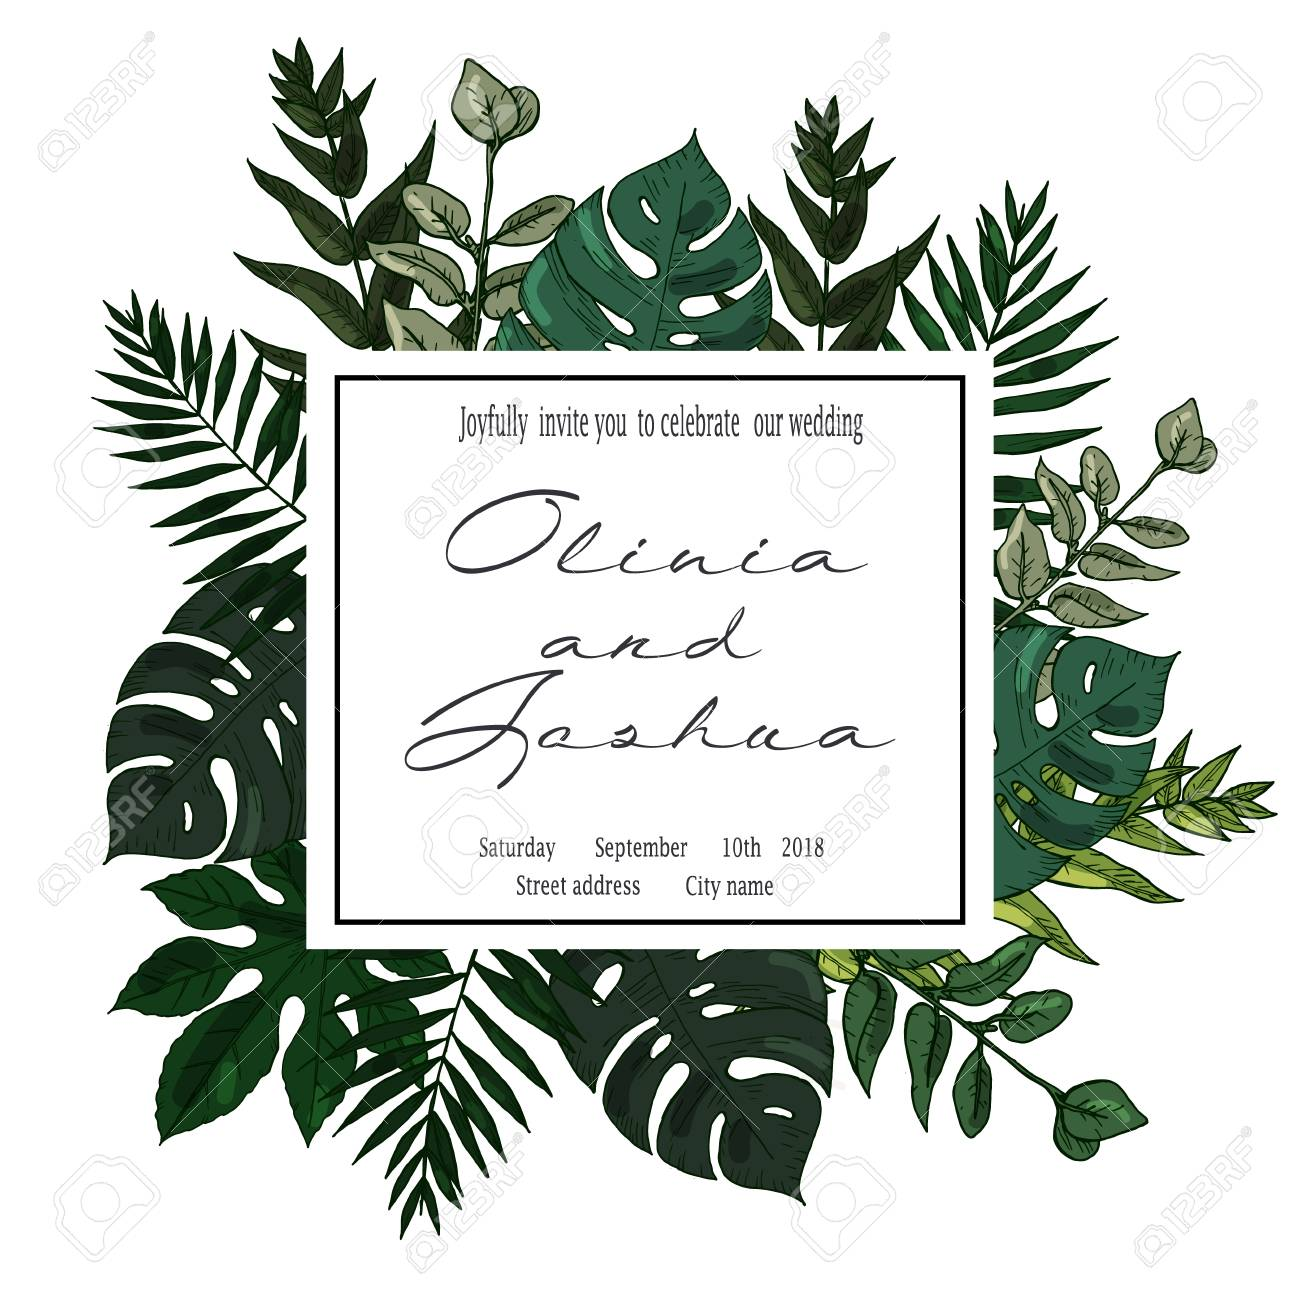 Wedding Invitation, Floral Invite Card Design With Green Tropical ...